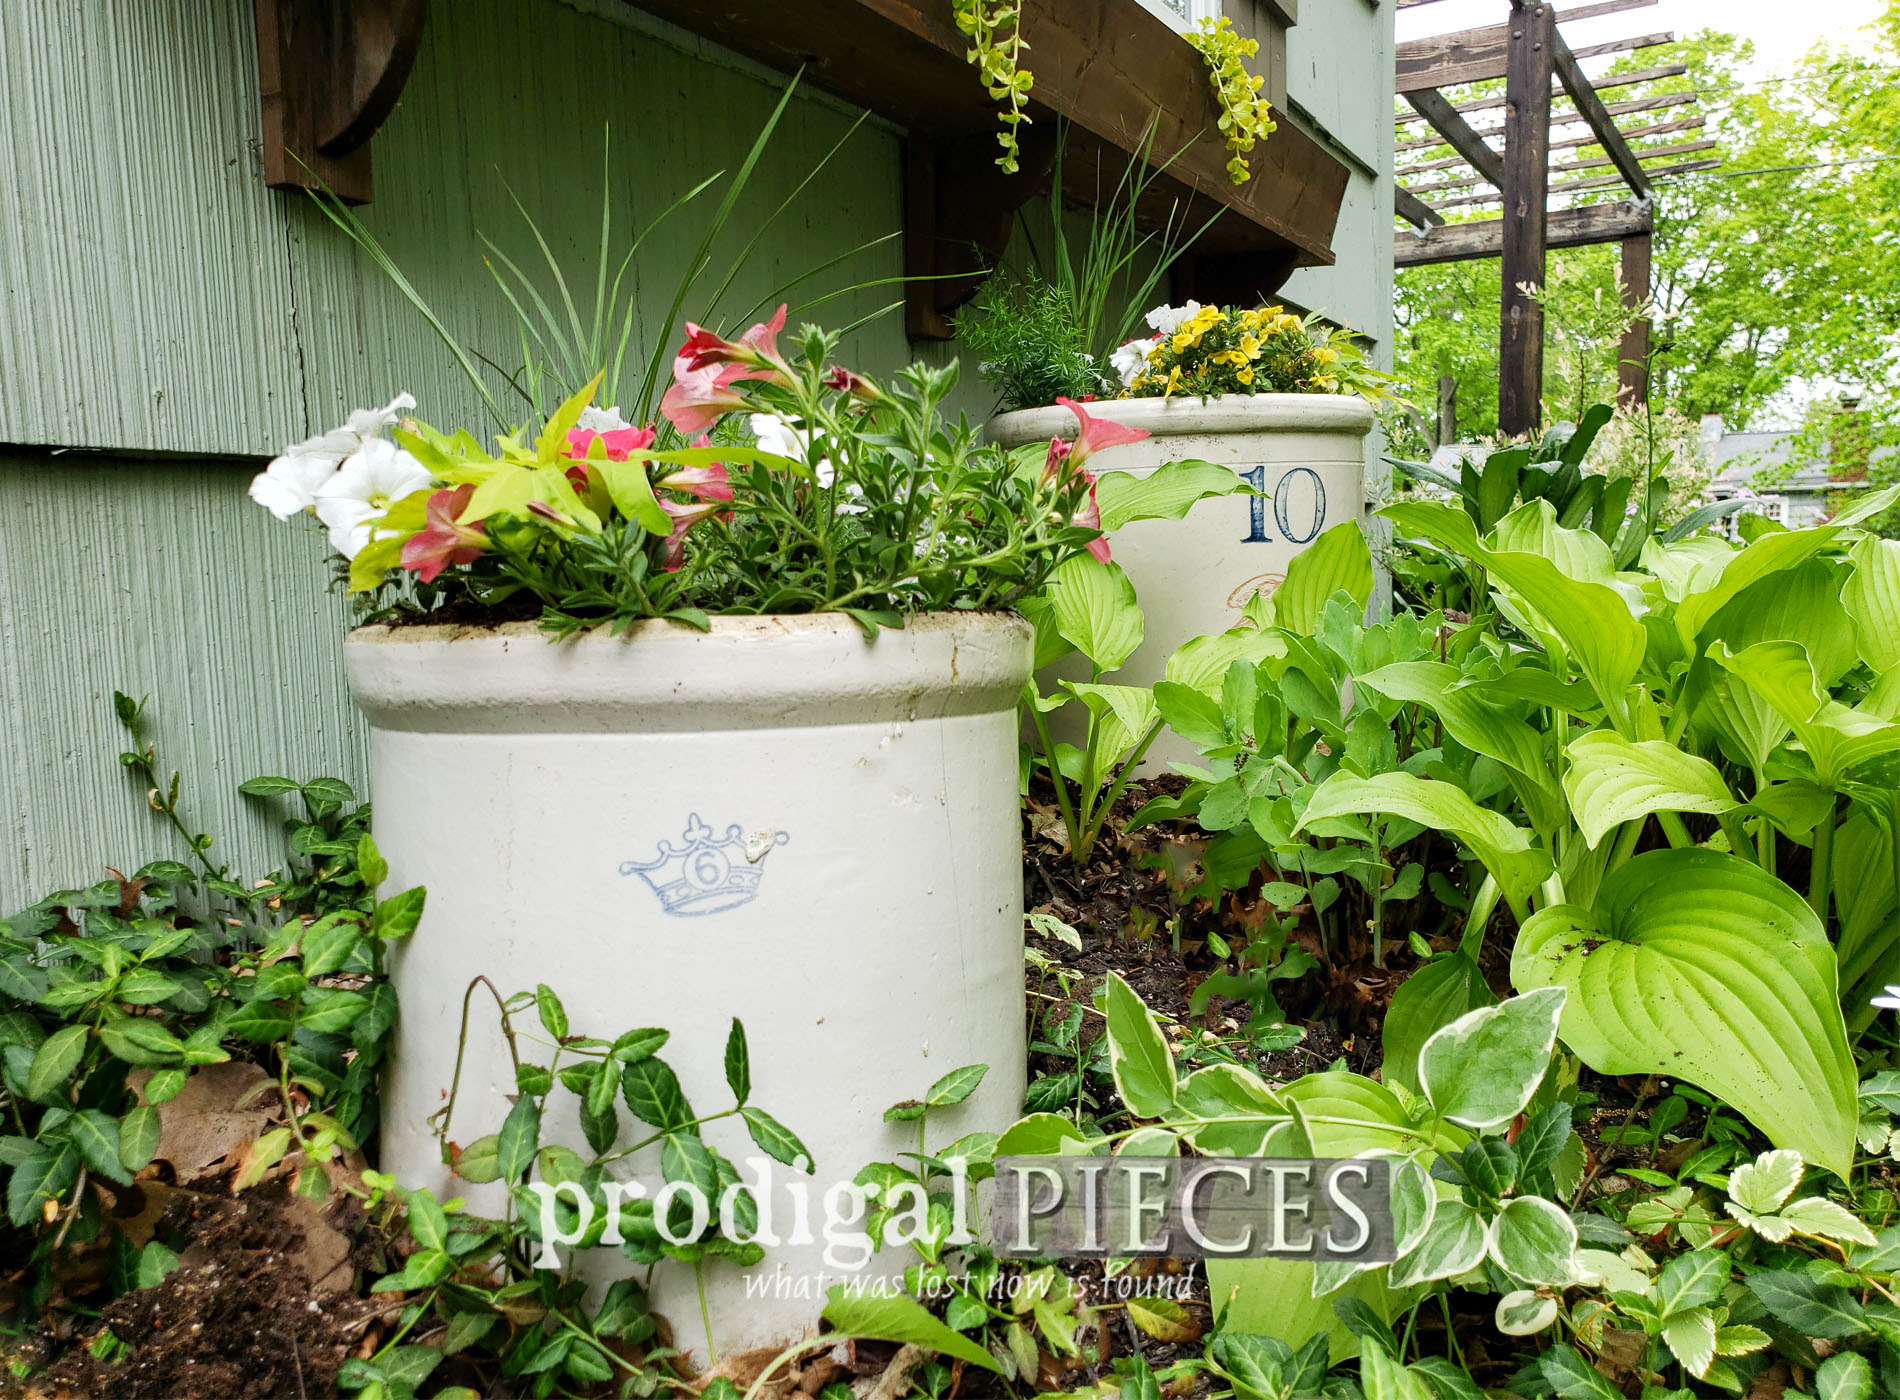 Featured Farmhouse Broken Crock Planter for DIY Garden Decor by Larissa of Prodigal Pieces | prodigalpieces.com #prodigalpieces #diy #home #garden #upcycled #farmhouse